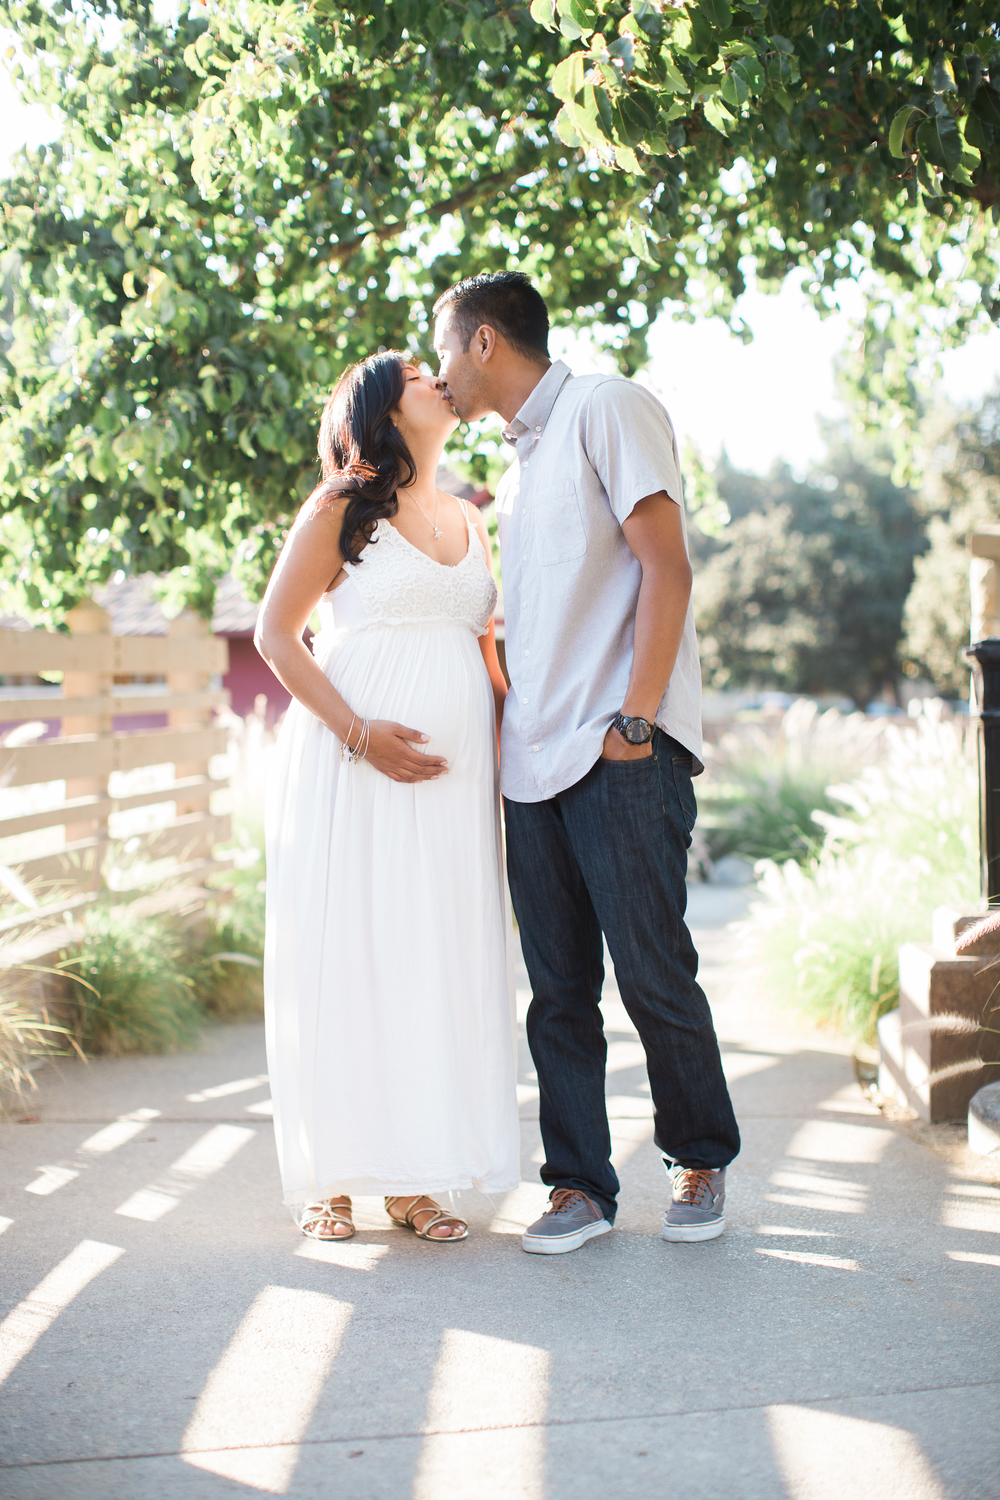 Marcella_Maternity_Cerritos_BrandonJFerlin_Photography-29.jpg